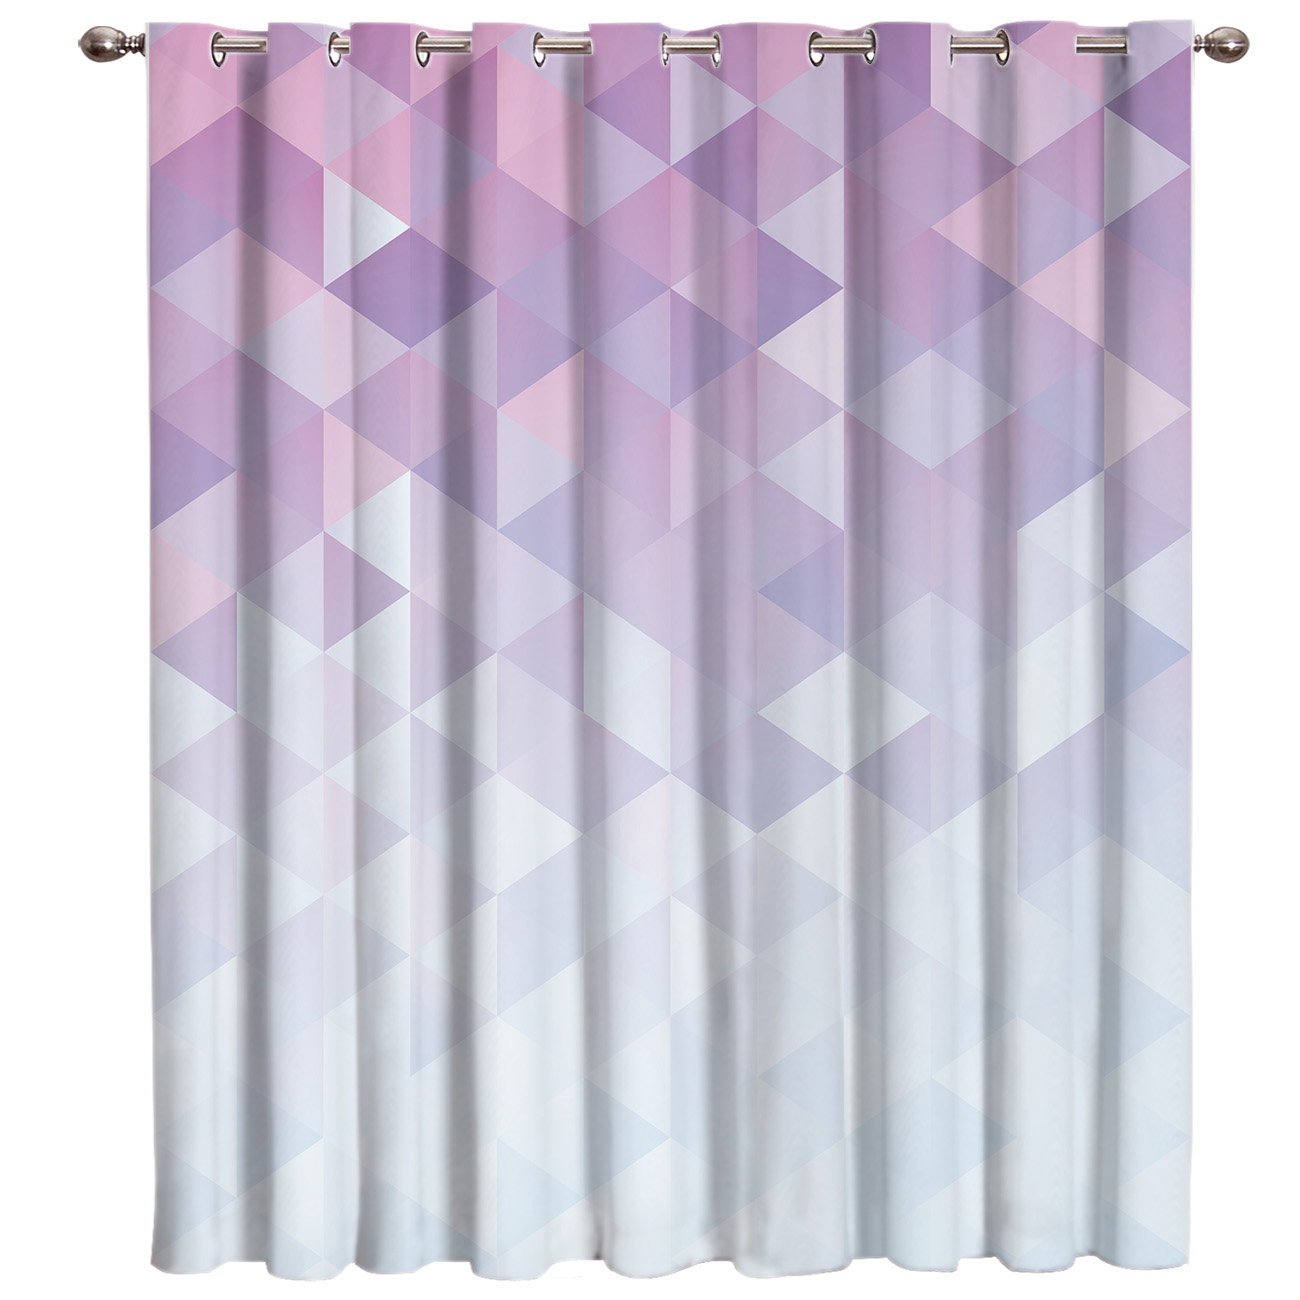 Geometric Gradient With Mosaic Triangle Pattern Window Curtains Dark Curtains Kitchen Drapes Indoor Window Treatment